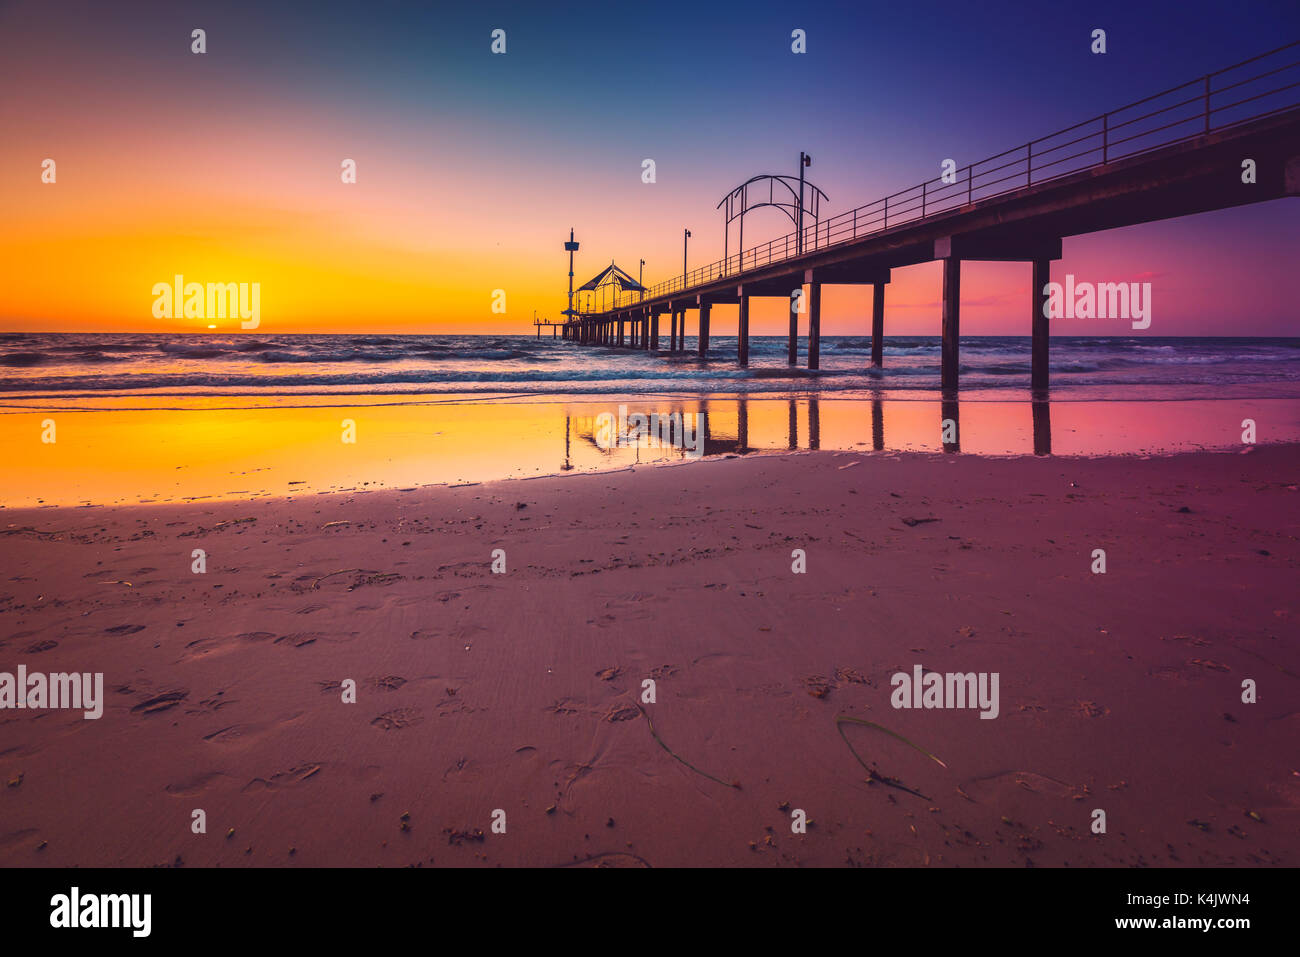 Brighton Beach jetty silhoutte at sunset, South Australia - Stock Image